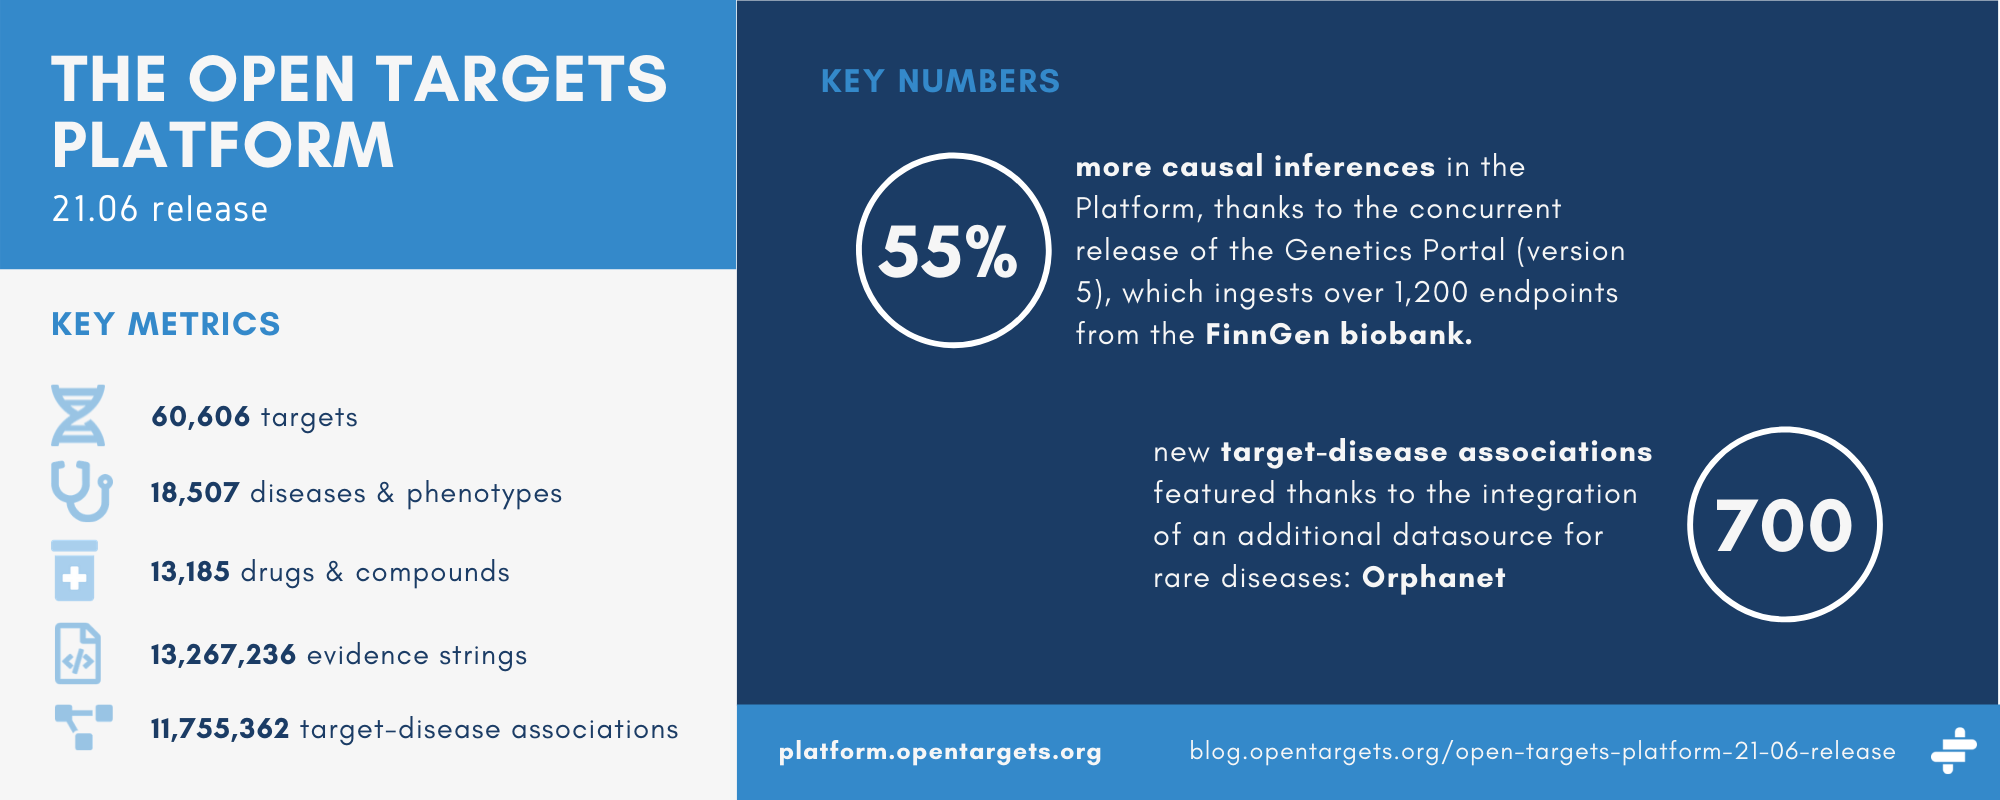 Summary of the release statistics for the Open Targets Platform